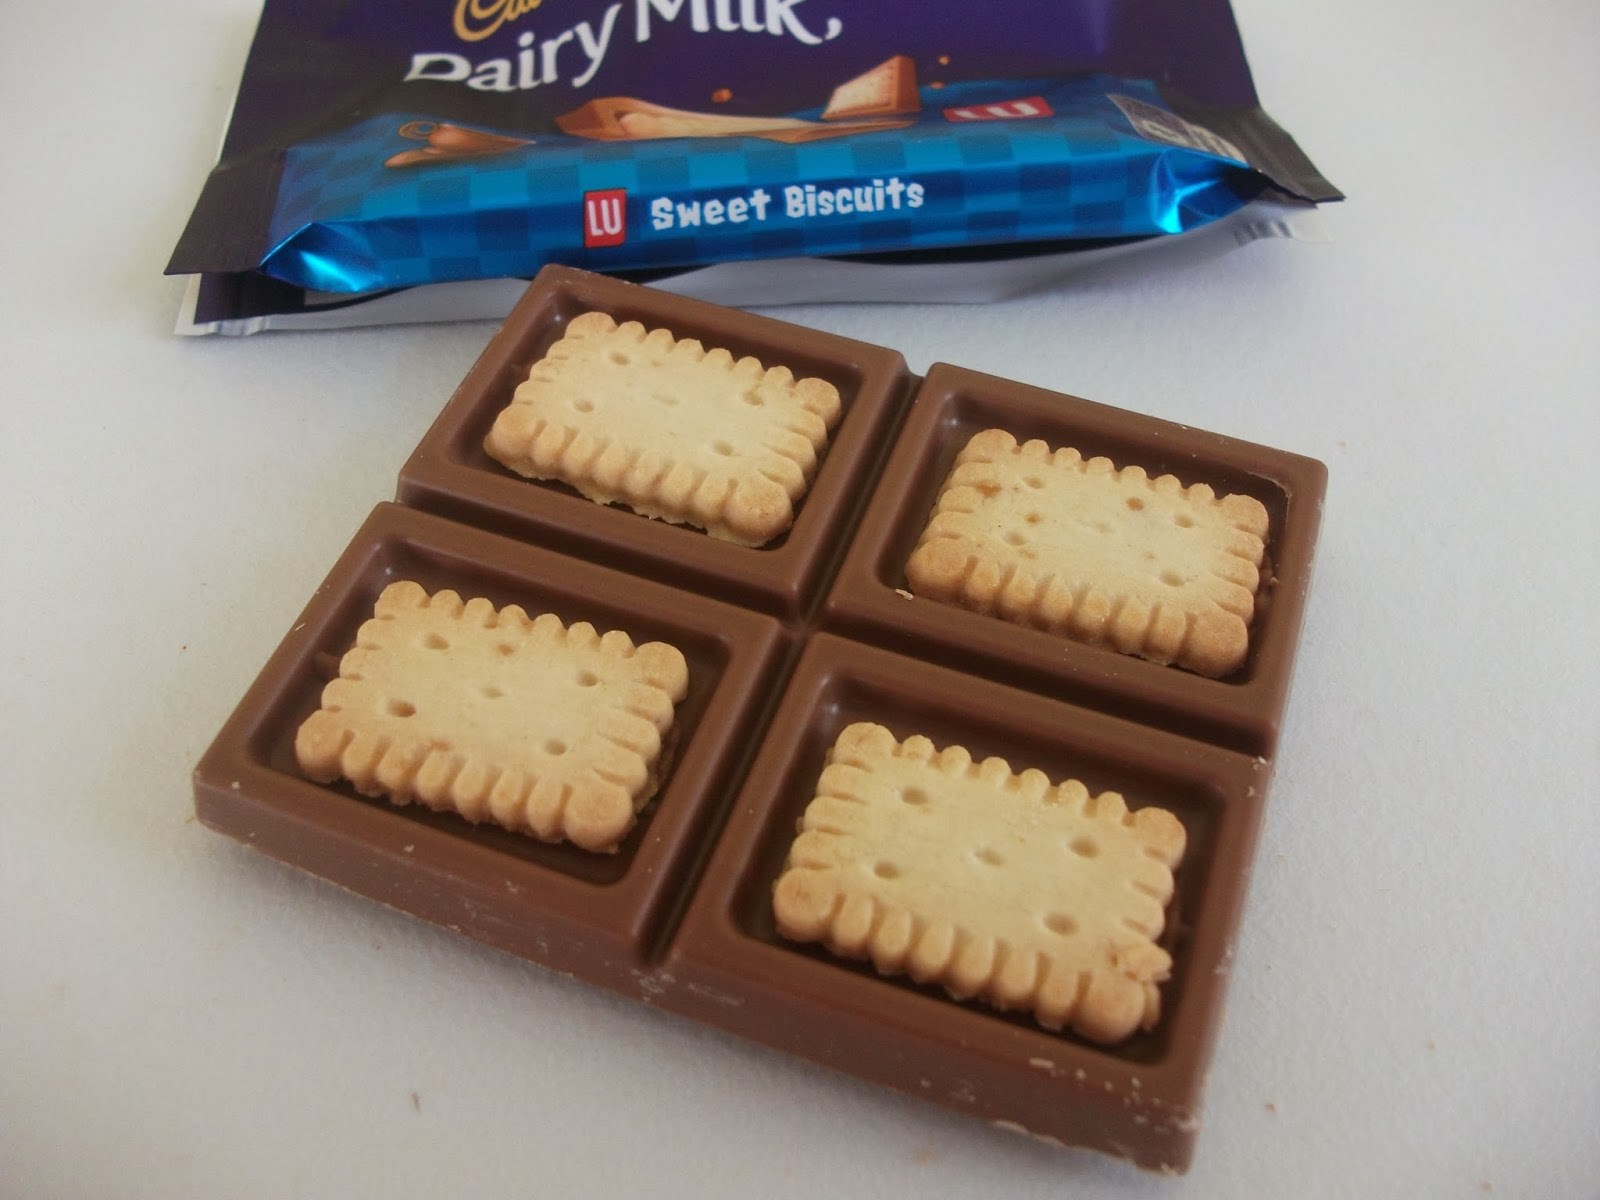 cadbury dairy milk with lu sweet biscuits